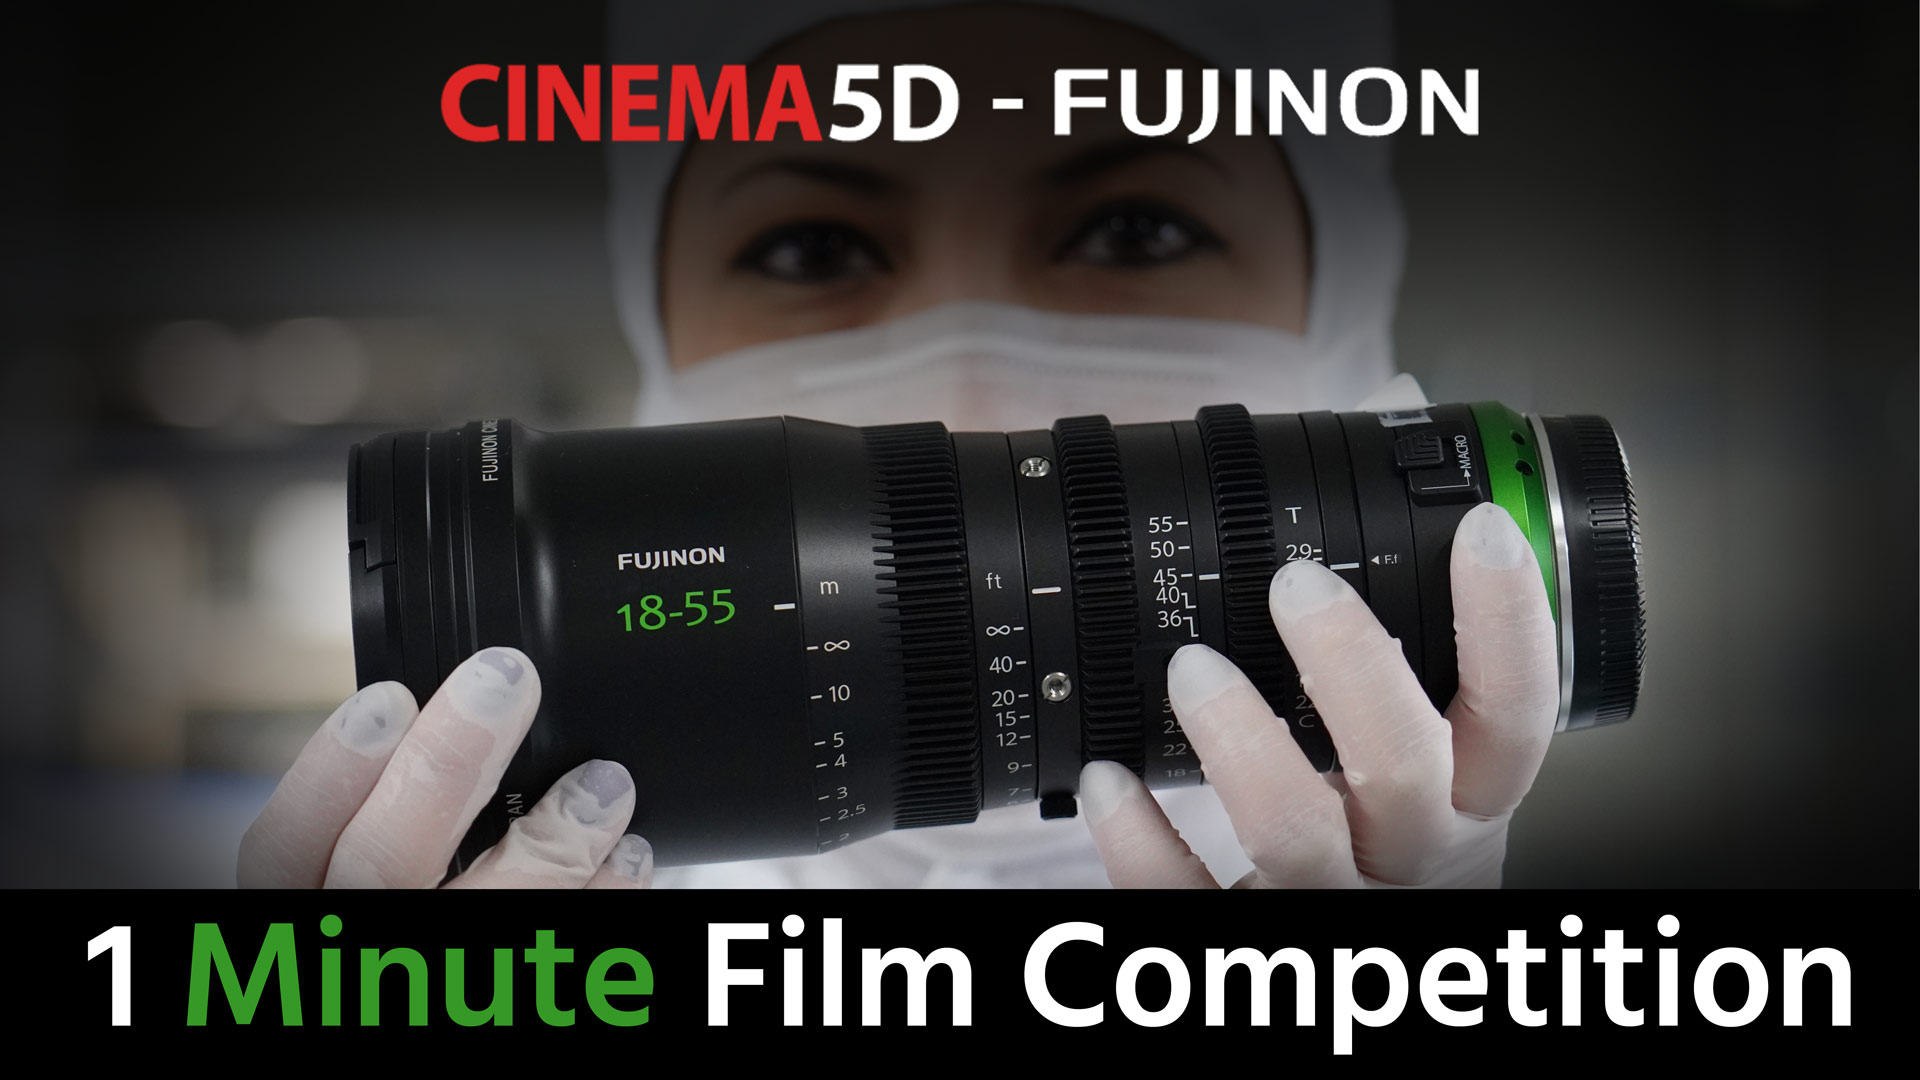 4Pm Cet To Pst win 2 fujinon mk lenses & more in our 1 minute film